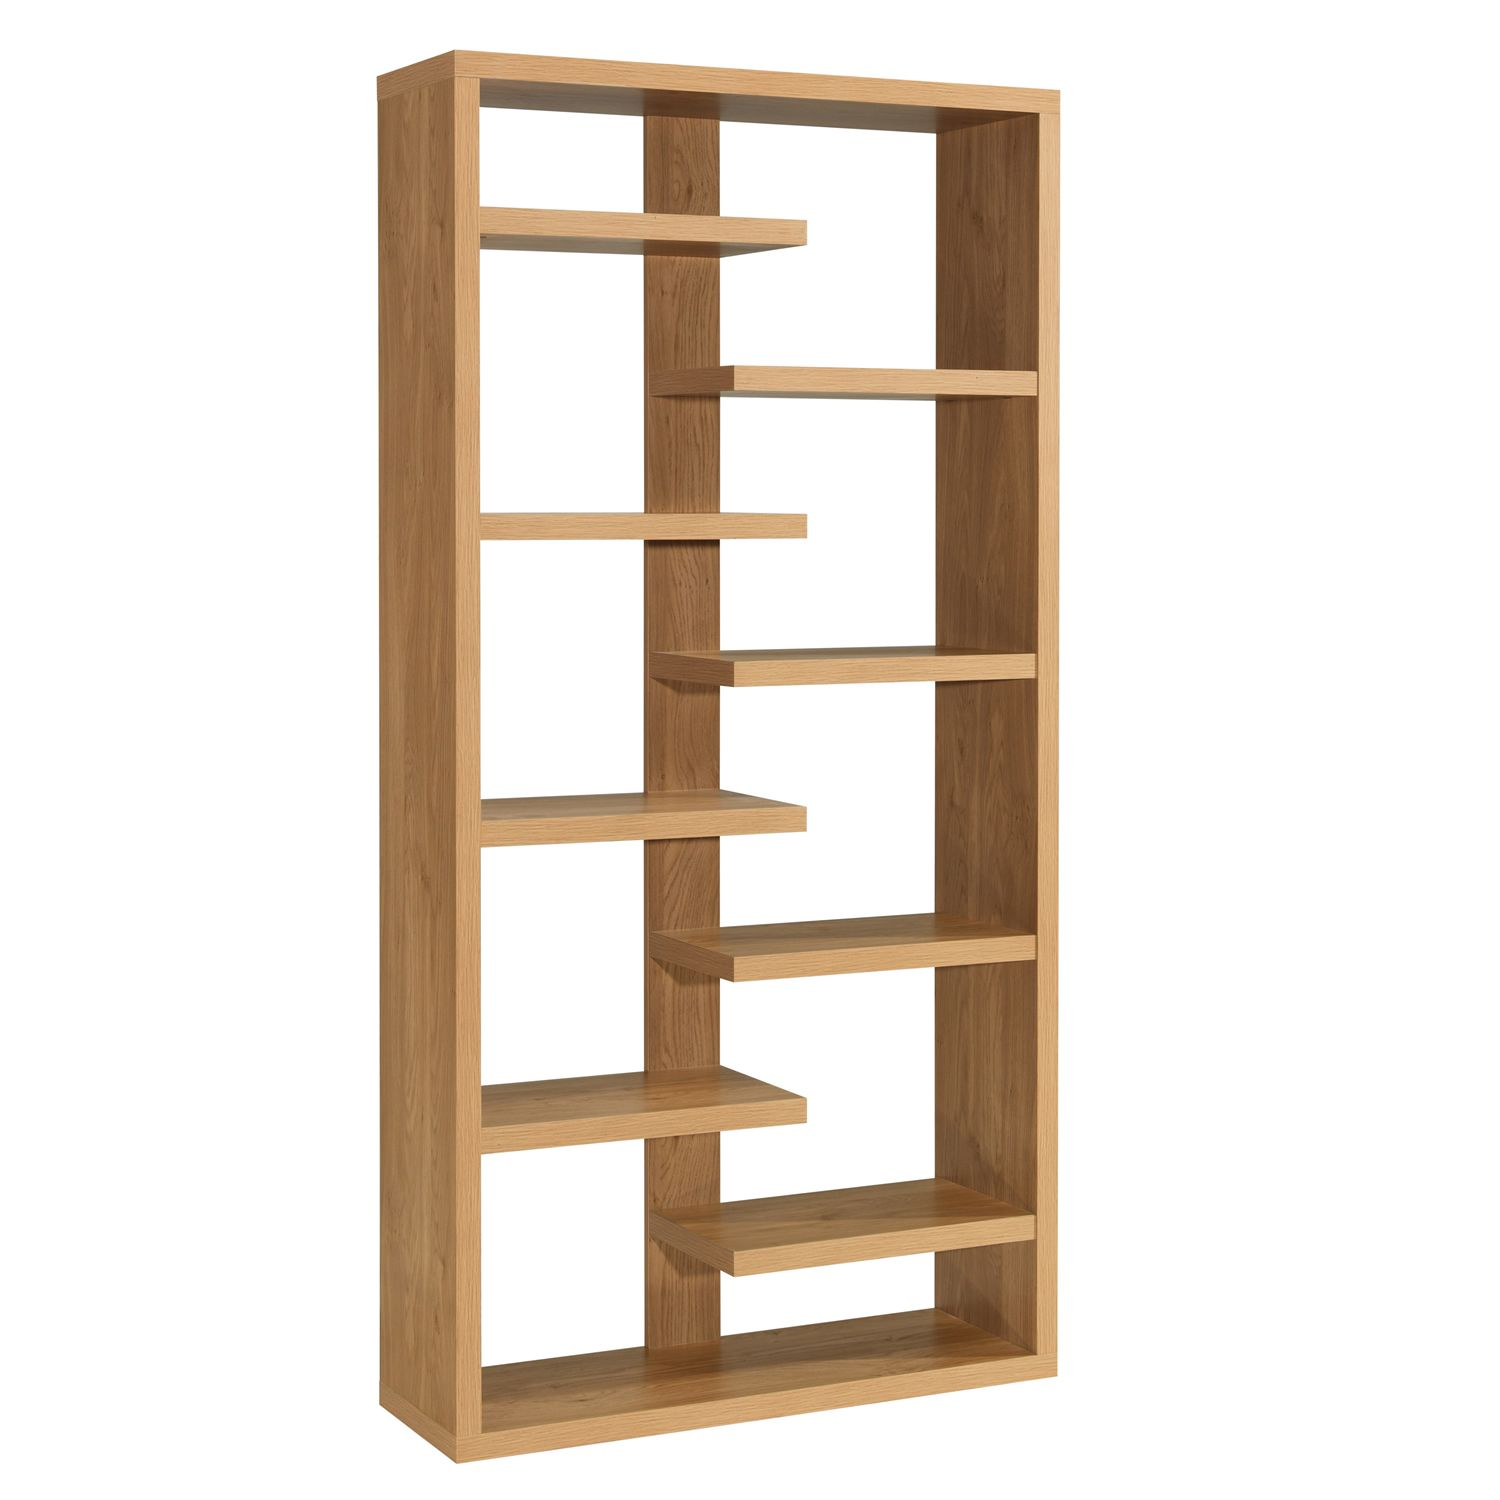 Dining Room Bookcase Oak Veneer Shelving Unit Toronto Modern Wooden